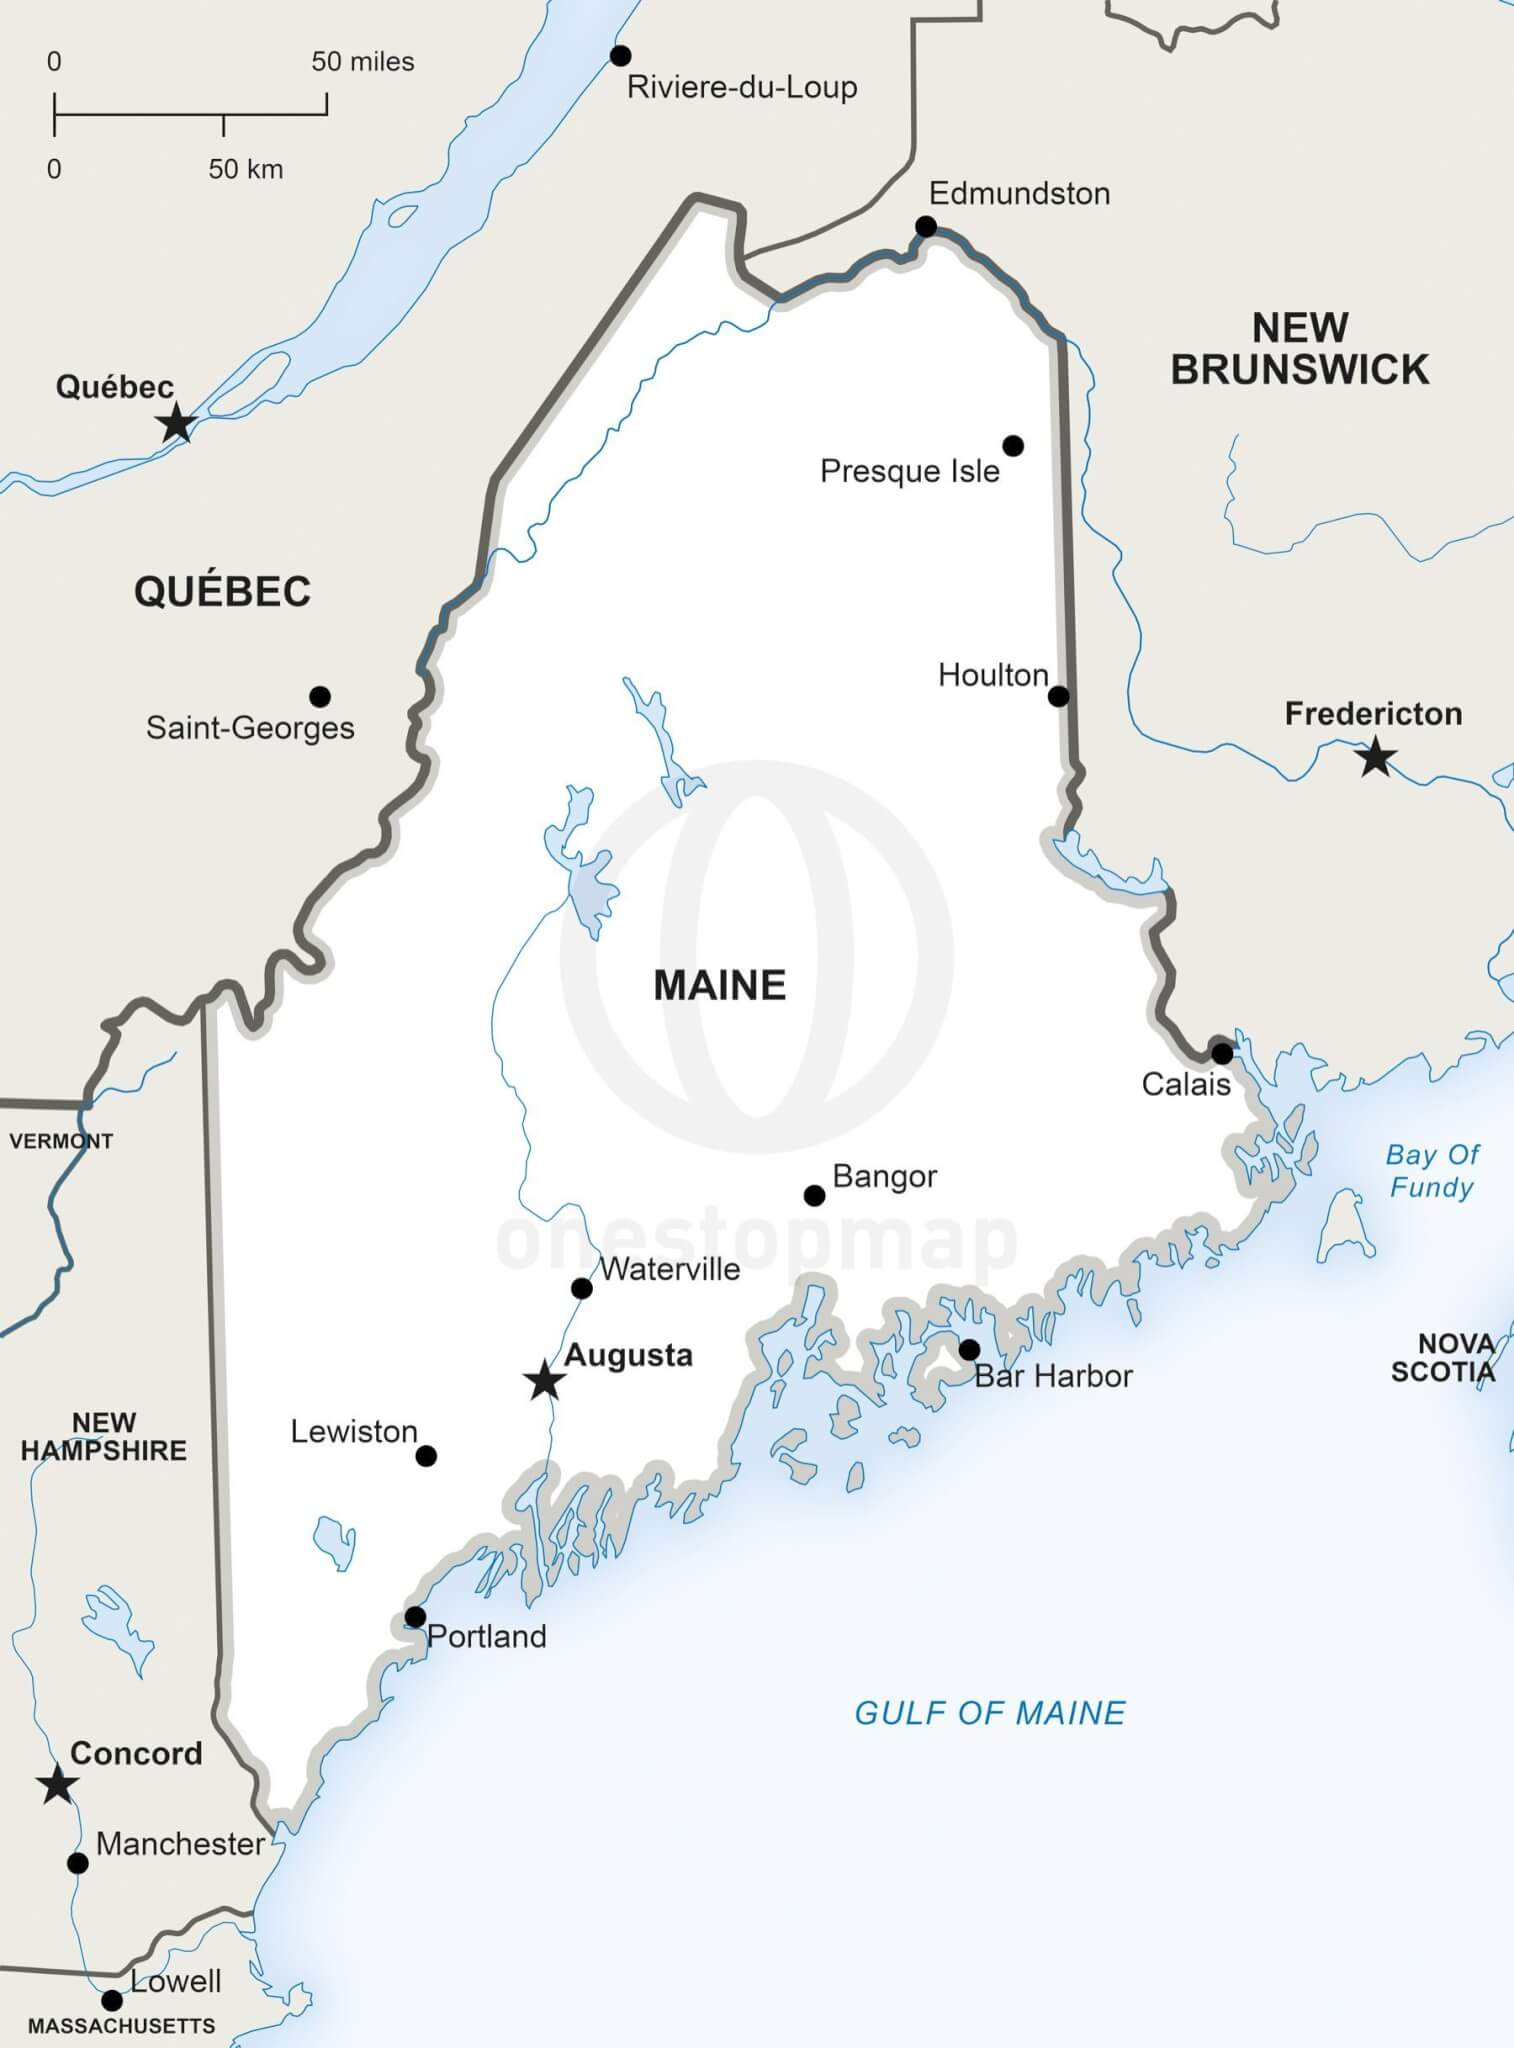 State Of Maine Map With Cities.Vector Map Of Maine Political One Stop Map